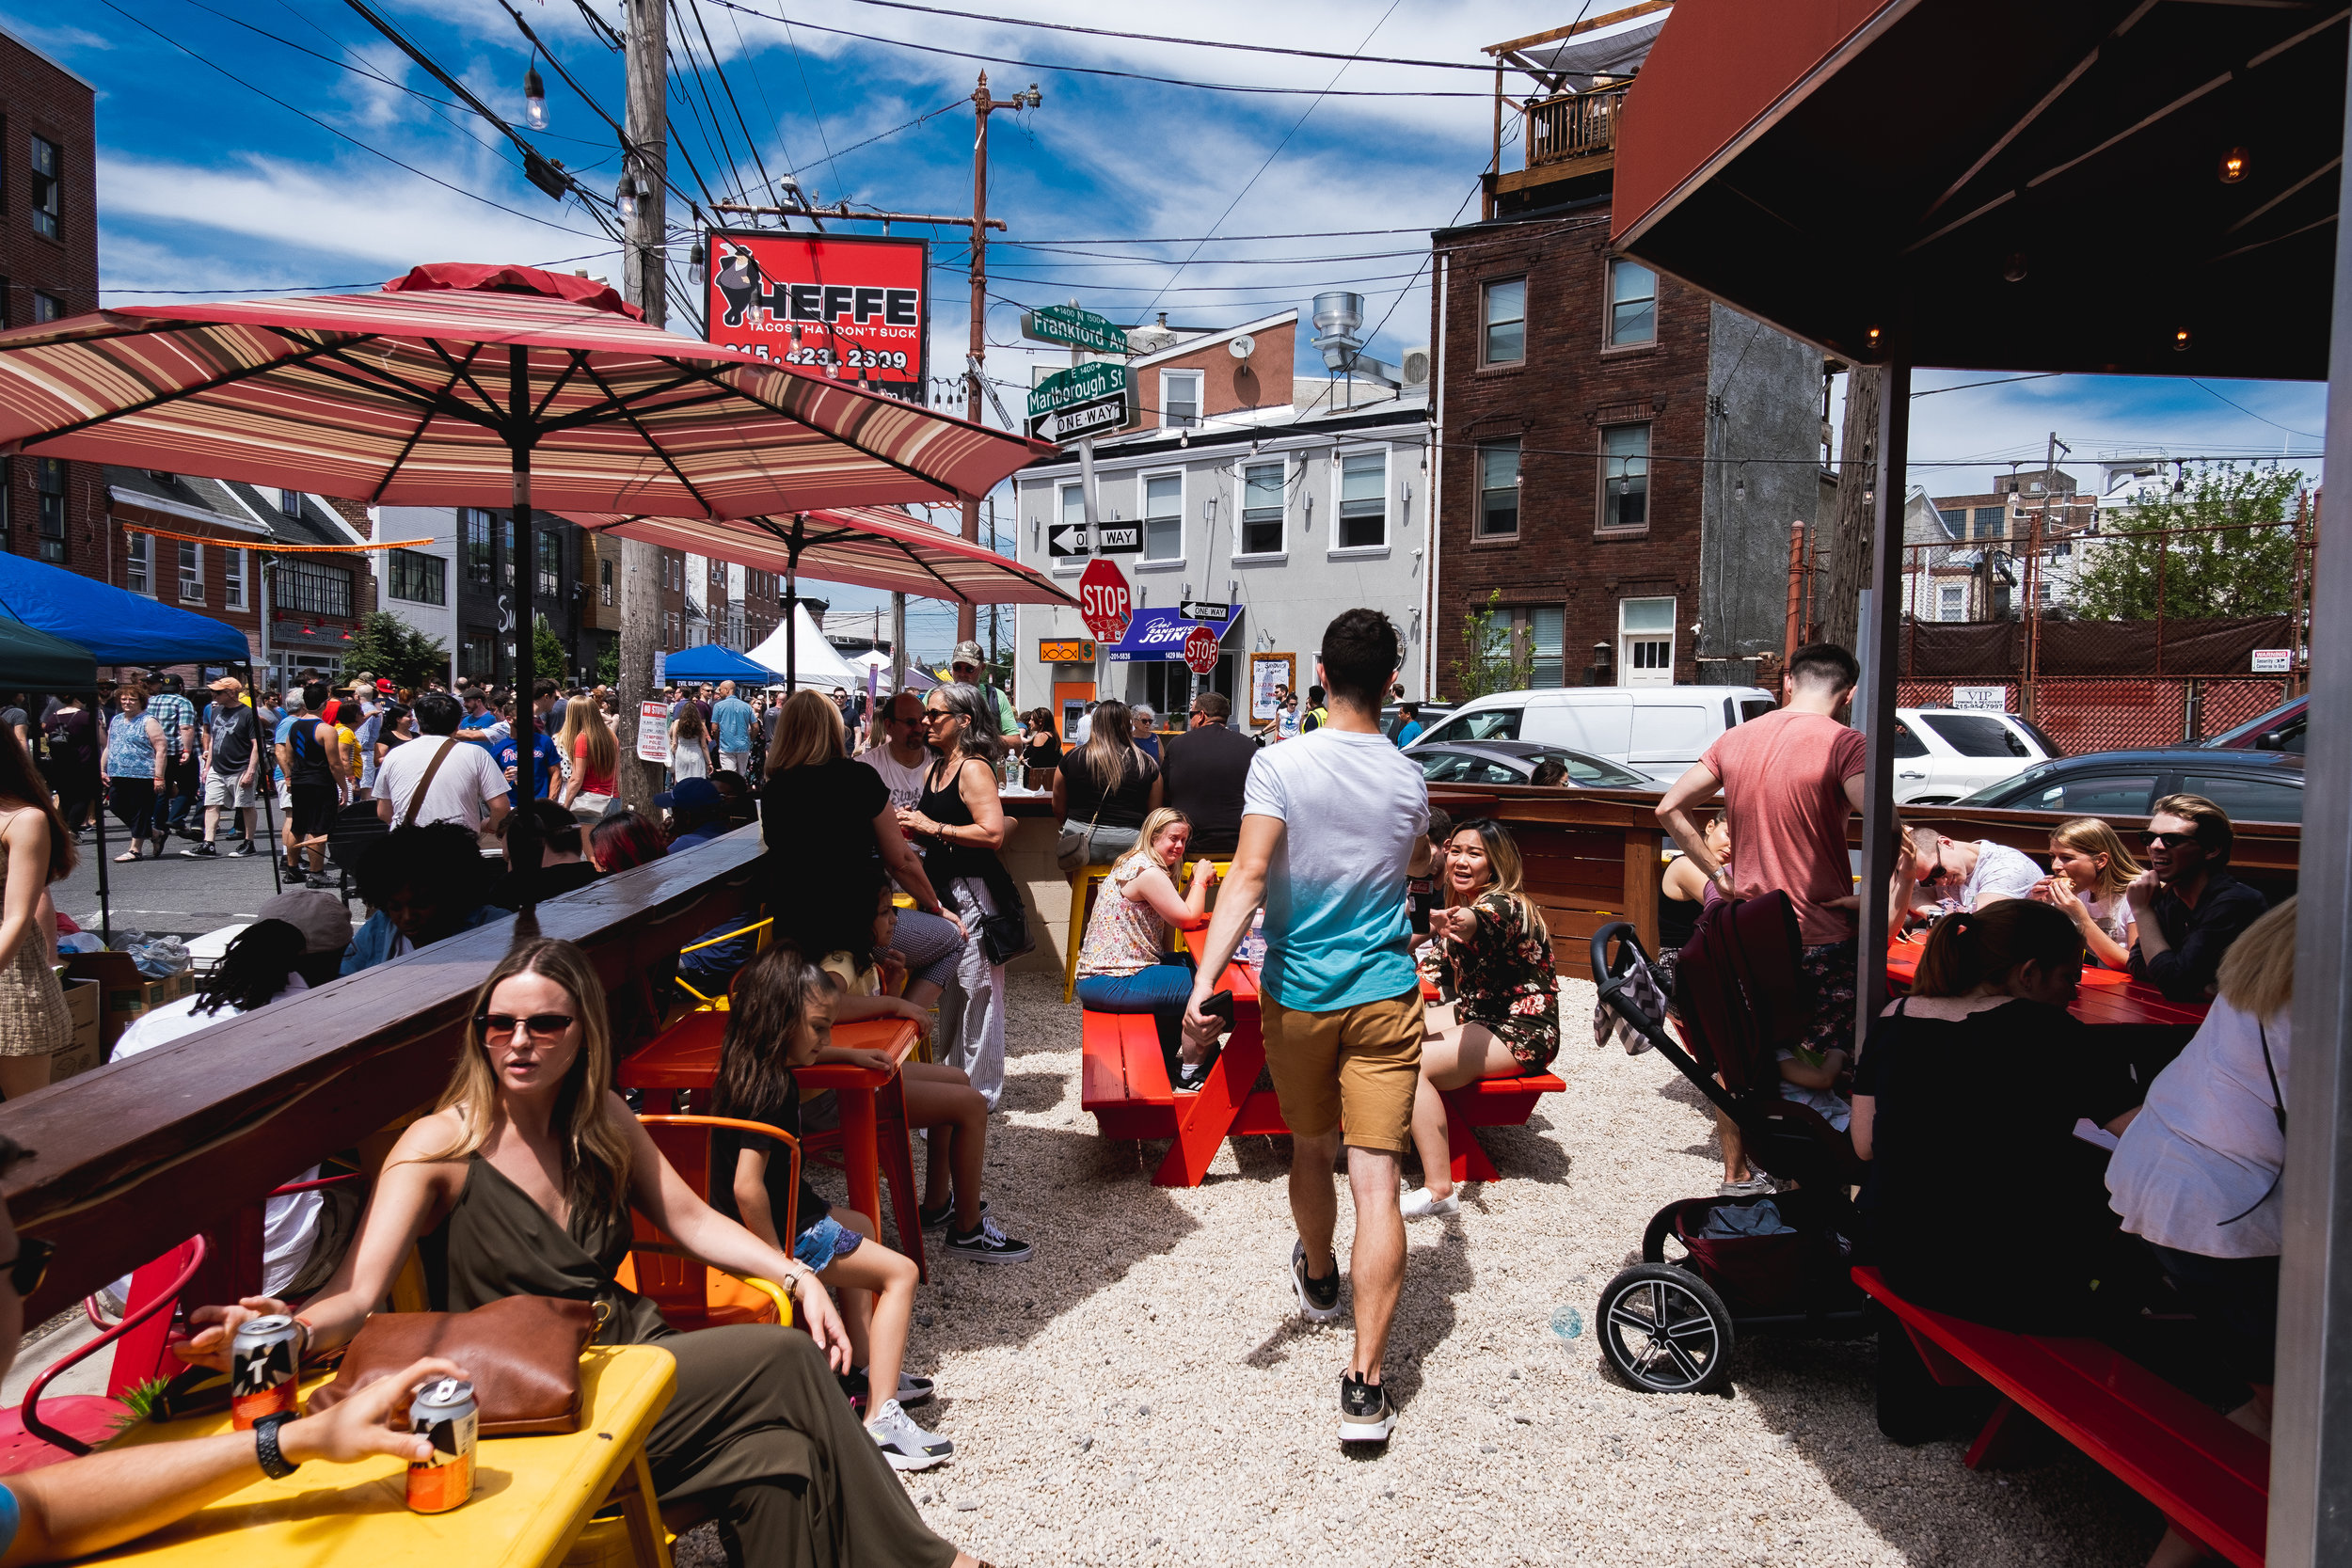 2019_PHILLY BEER WEEK_FISHTOWN FESTIVALE_EVENTS_THE PHILLY CHECKLIST-7.jpg